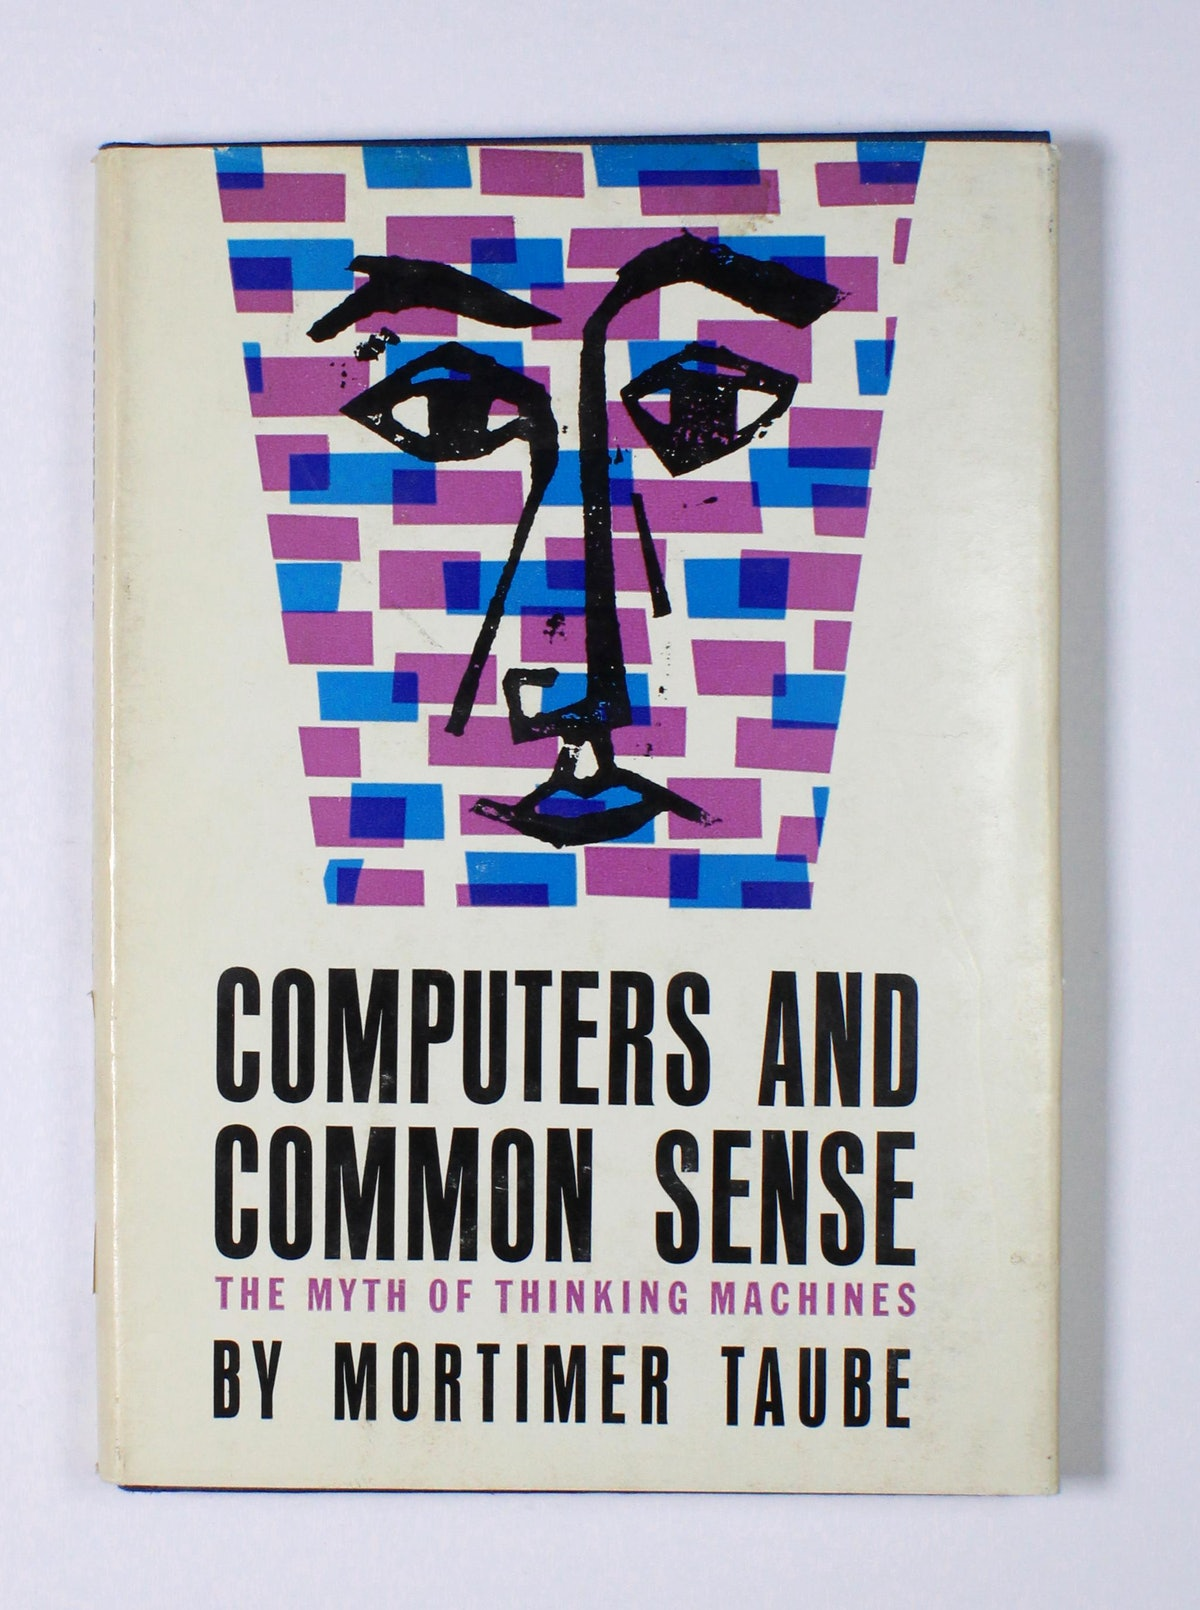 Computers and Common Sense: The Myth of Thinking Machines